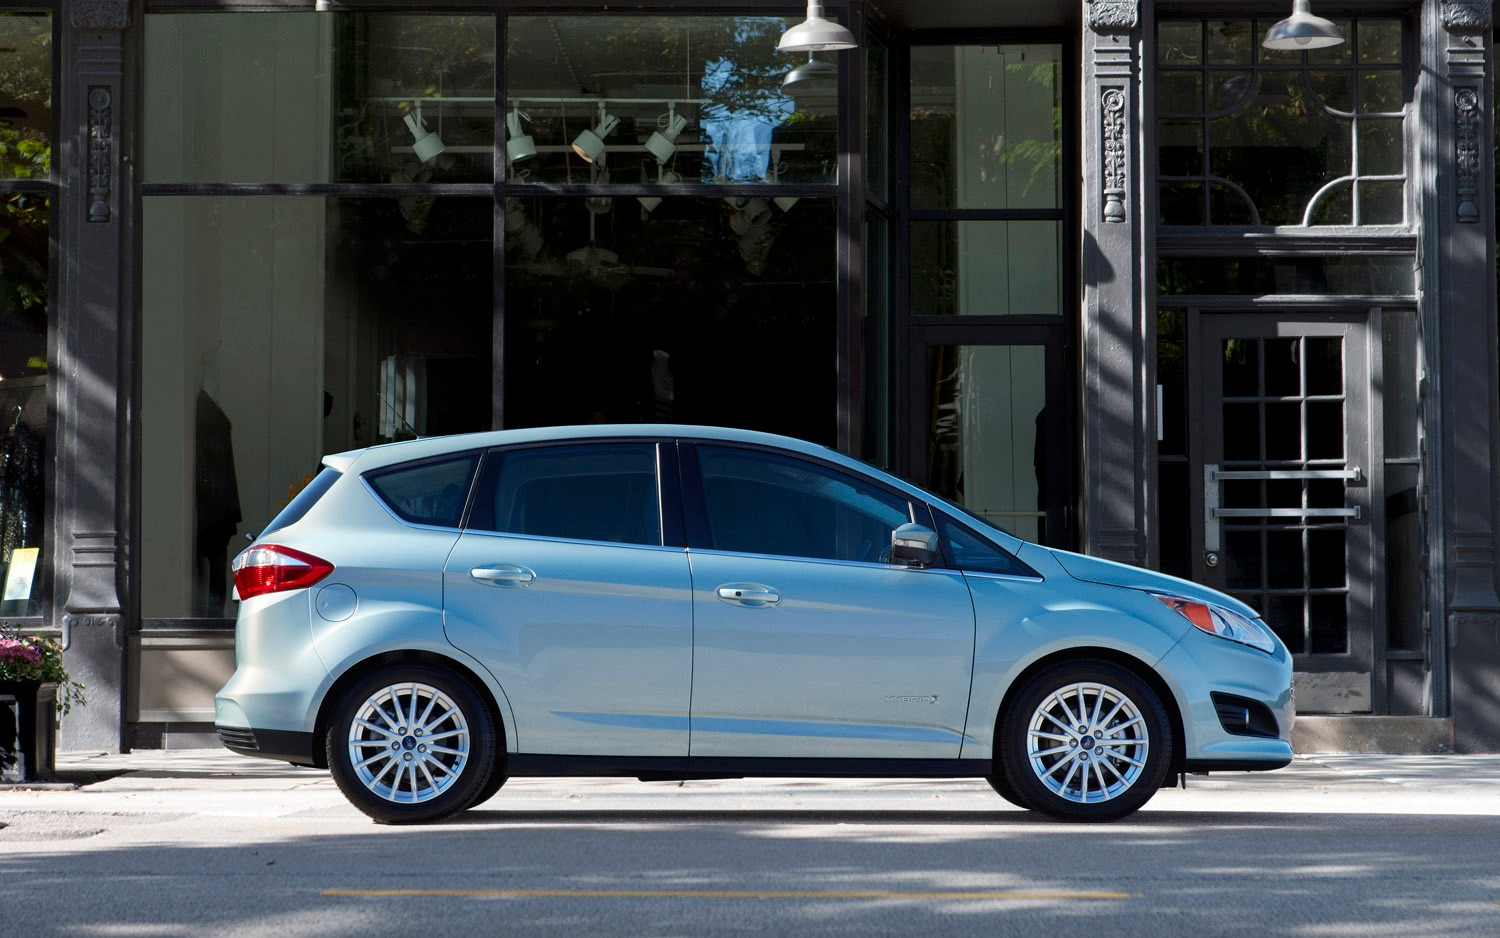 2013 Ford C Max Hybrid Right Side View1